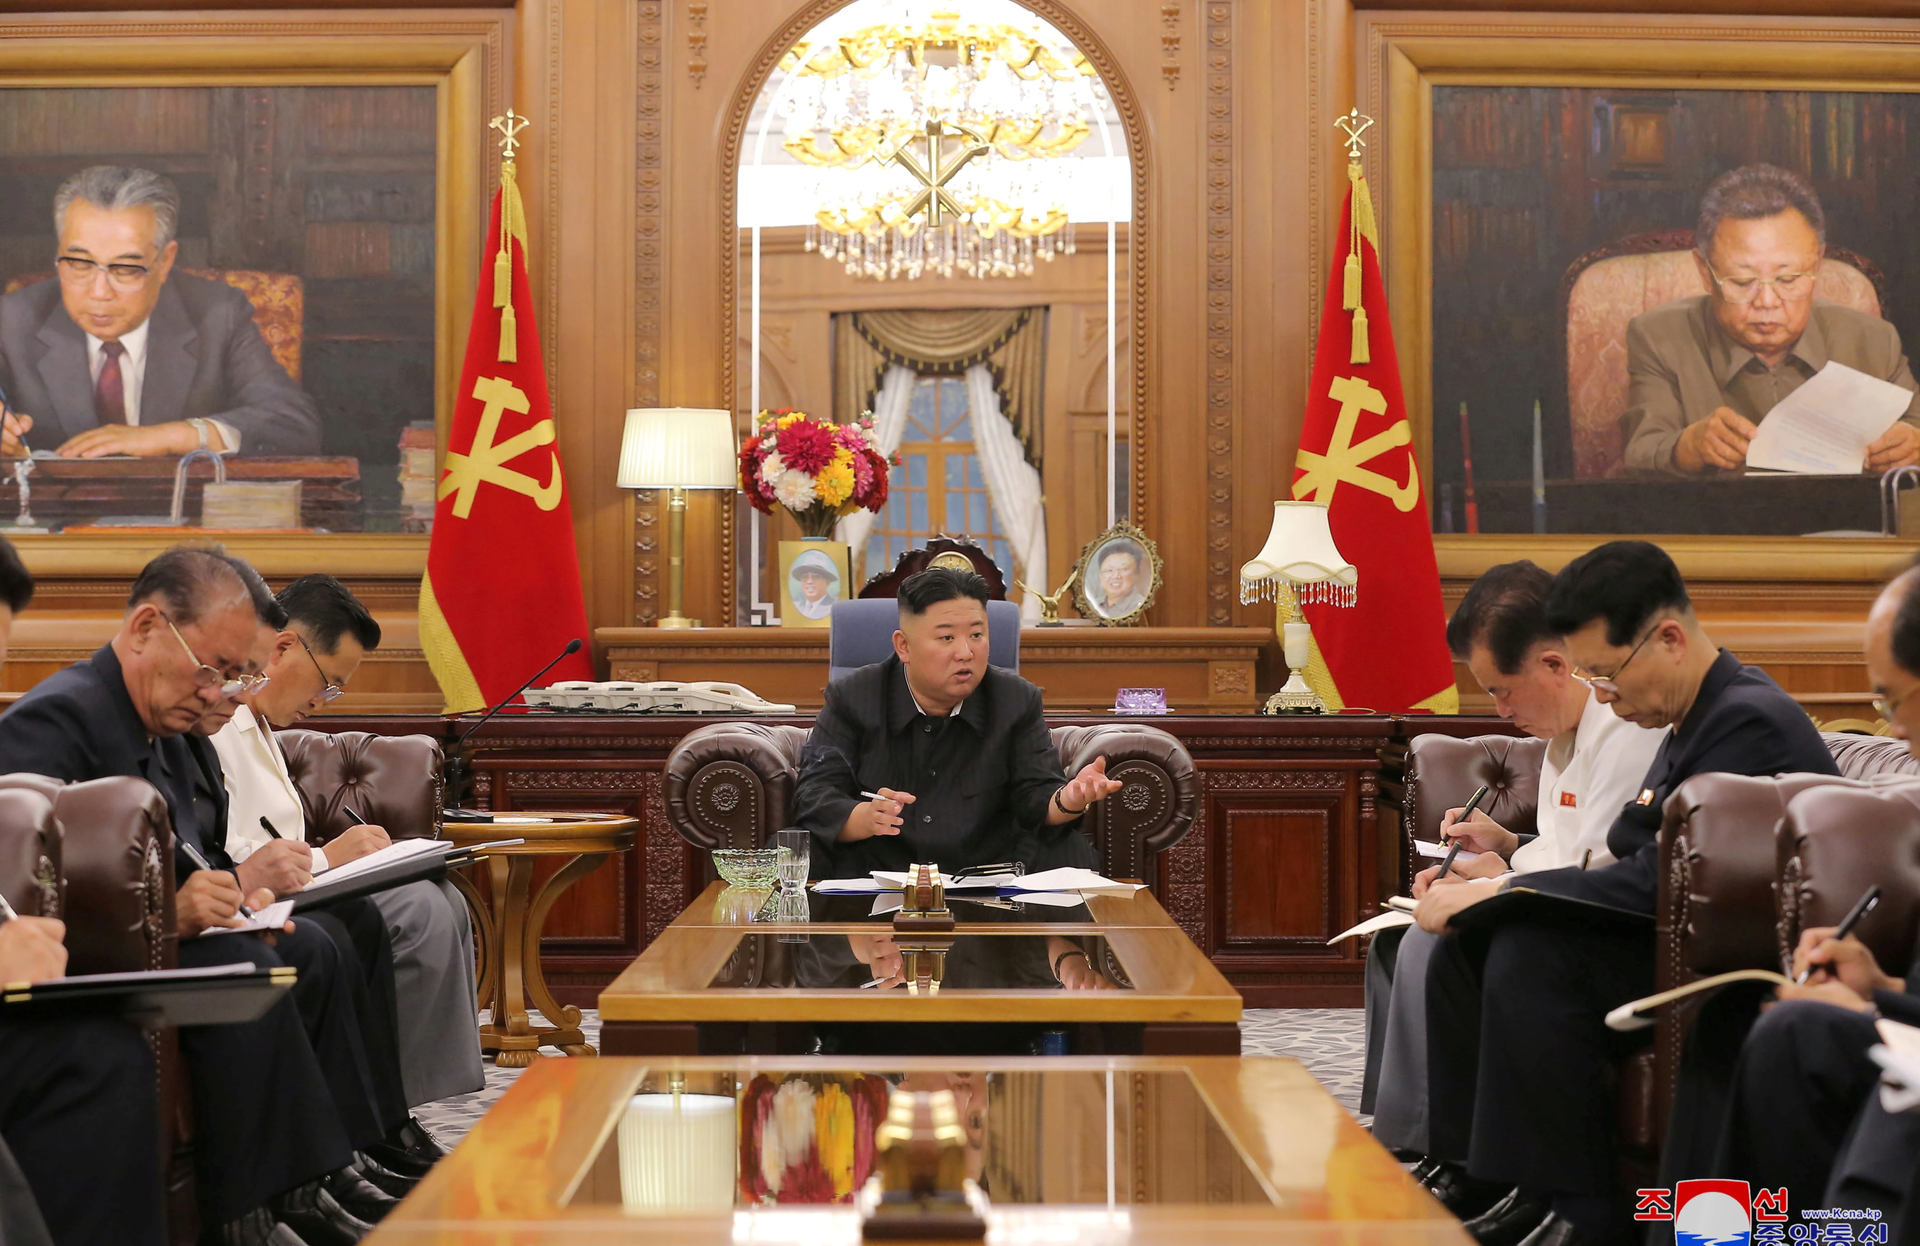 KCNA image of North Korean leader Kim Jong Un at a meeting with senior officials from the Workers' Party of Korea (WPK) Central Committee and Provincial Party Committees in Pyongyang, June 8, 2021. - Sputnik International, 1920, 07.09.2021